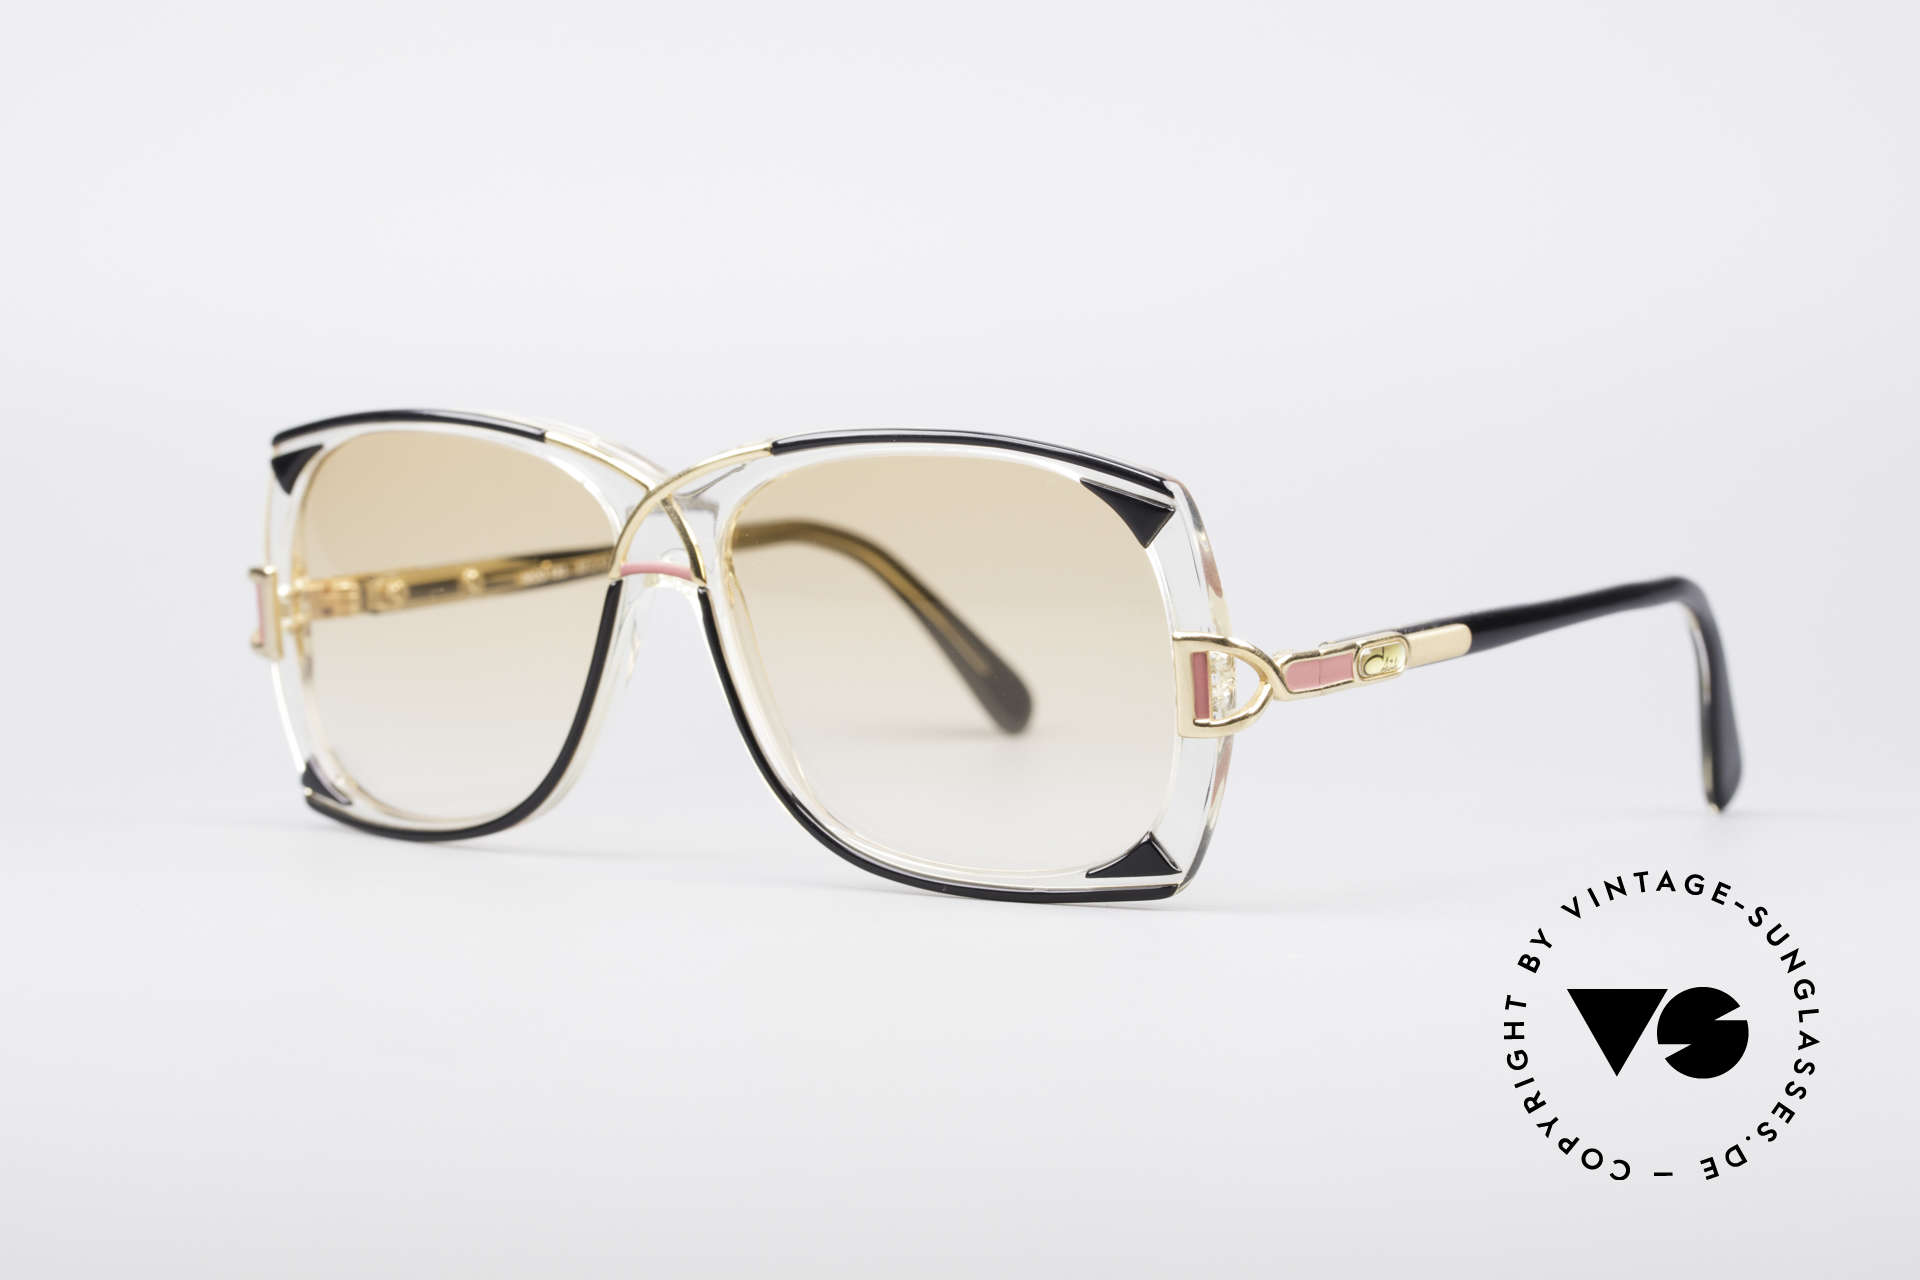 Cazal 193 Original 80's Shades, light tinted sun lenses (orange-gradient color), Made for Women